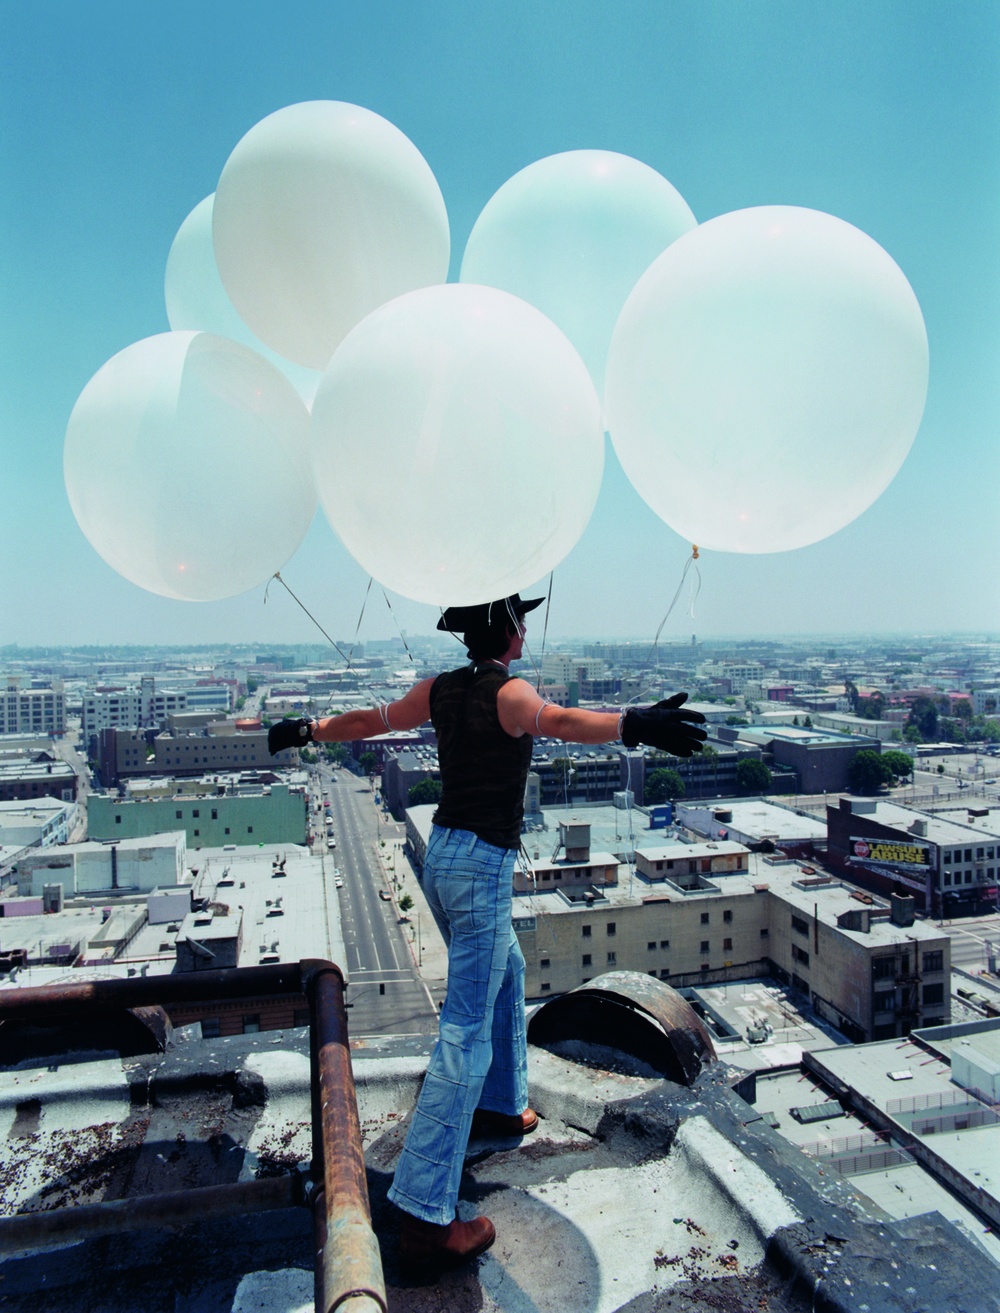 © Nothing Beats Reality by Pierre Winther, to be published by teNeues in March 2015, € 98 - www.teneues.com. Trust, Balloon Boy, 1997 - Photo © 2014 by Pierre Winther. All rights reserved. www.pierrewinther.com